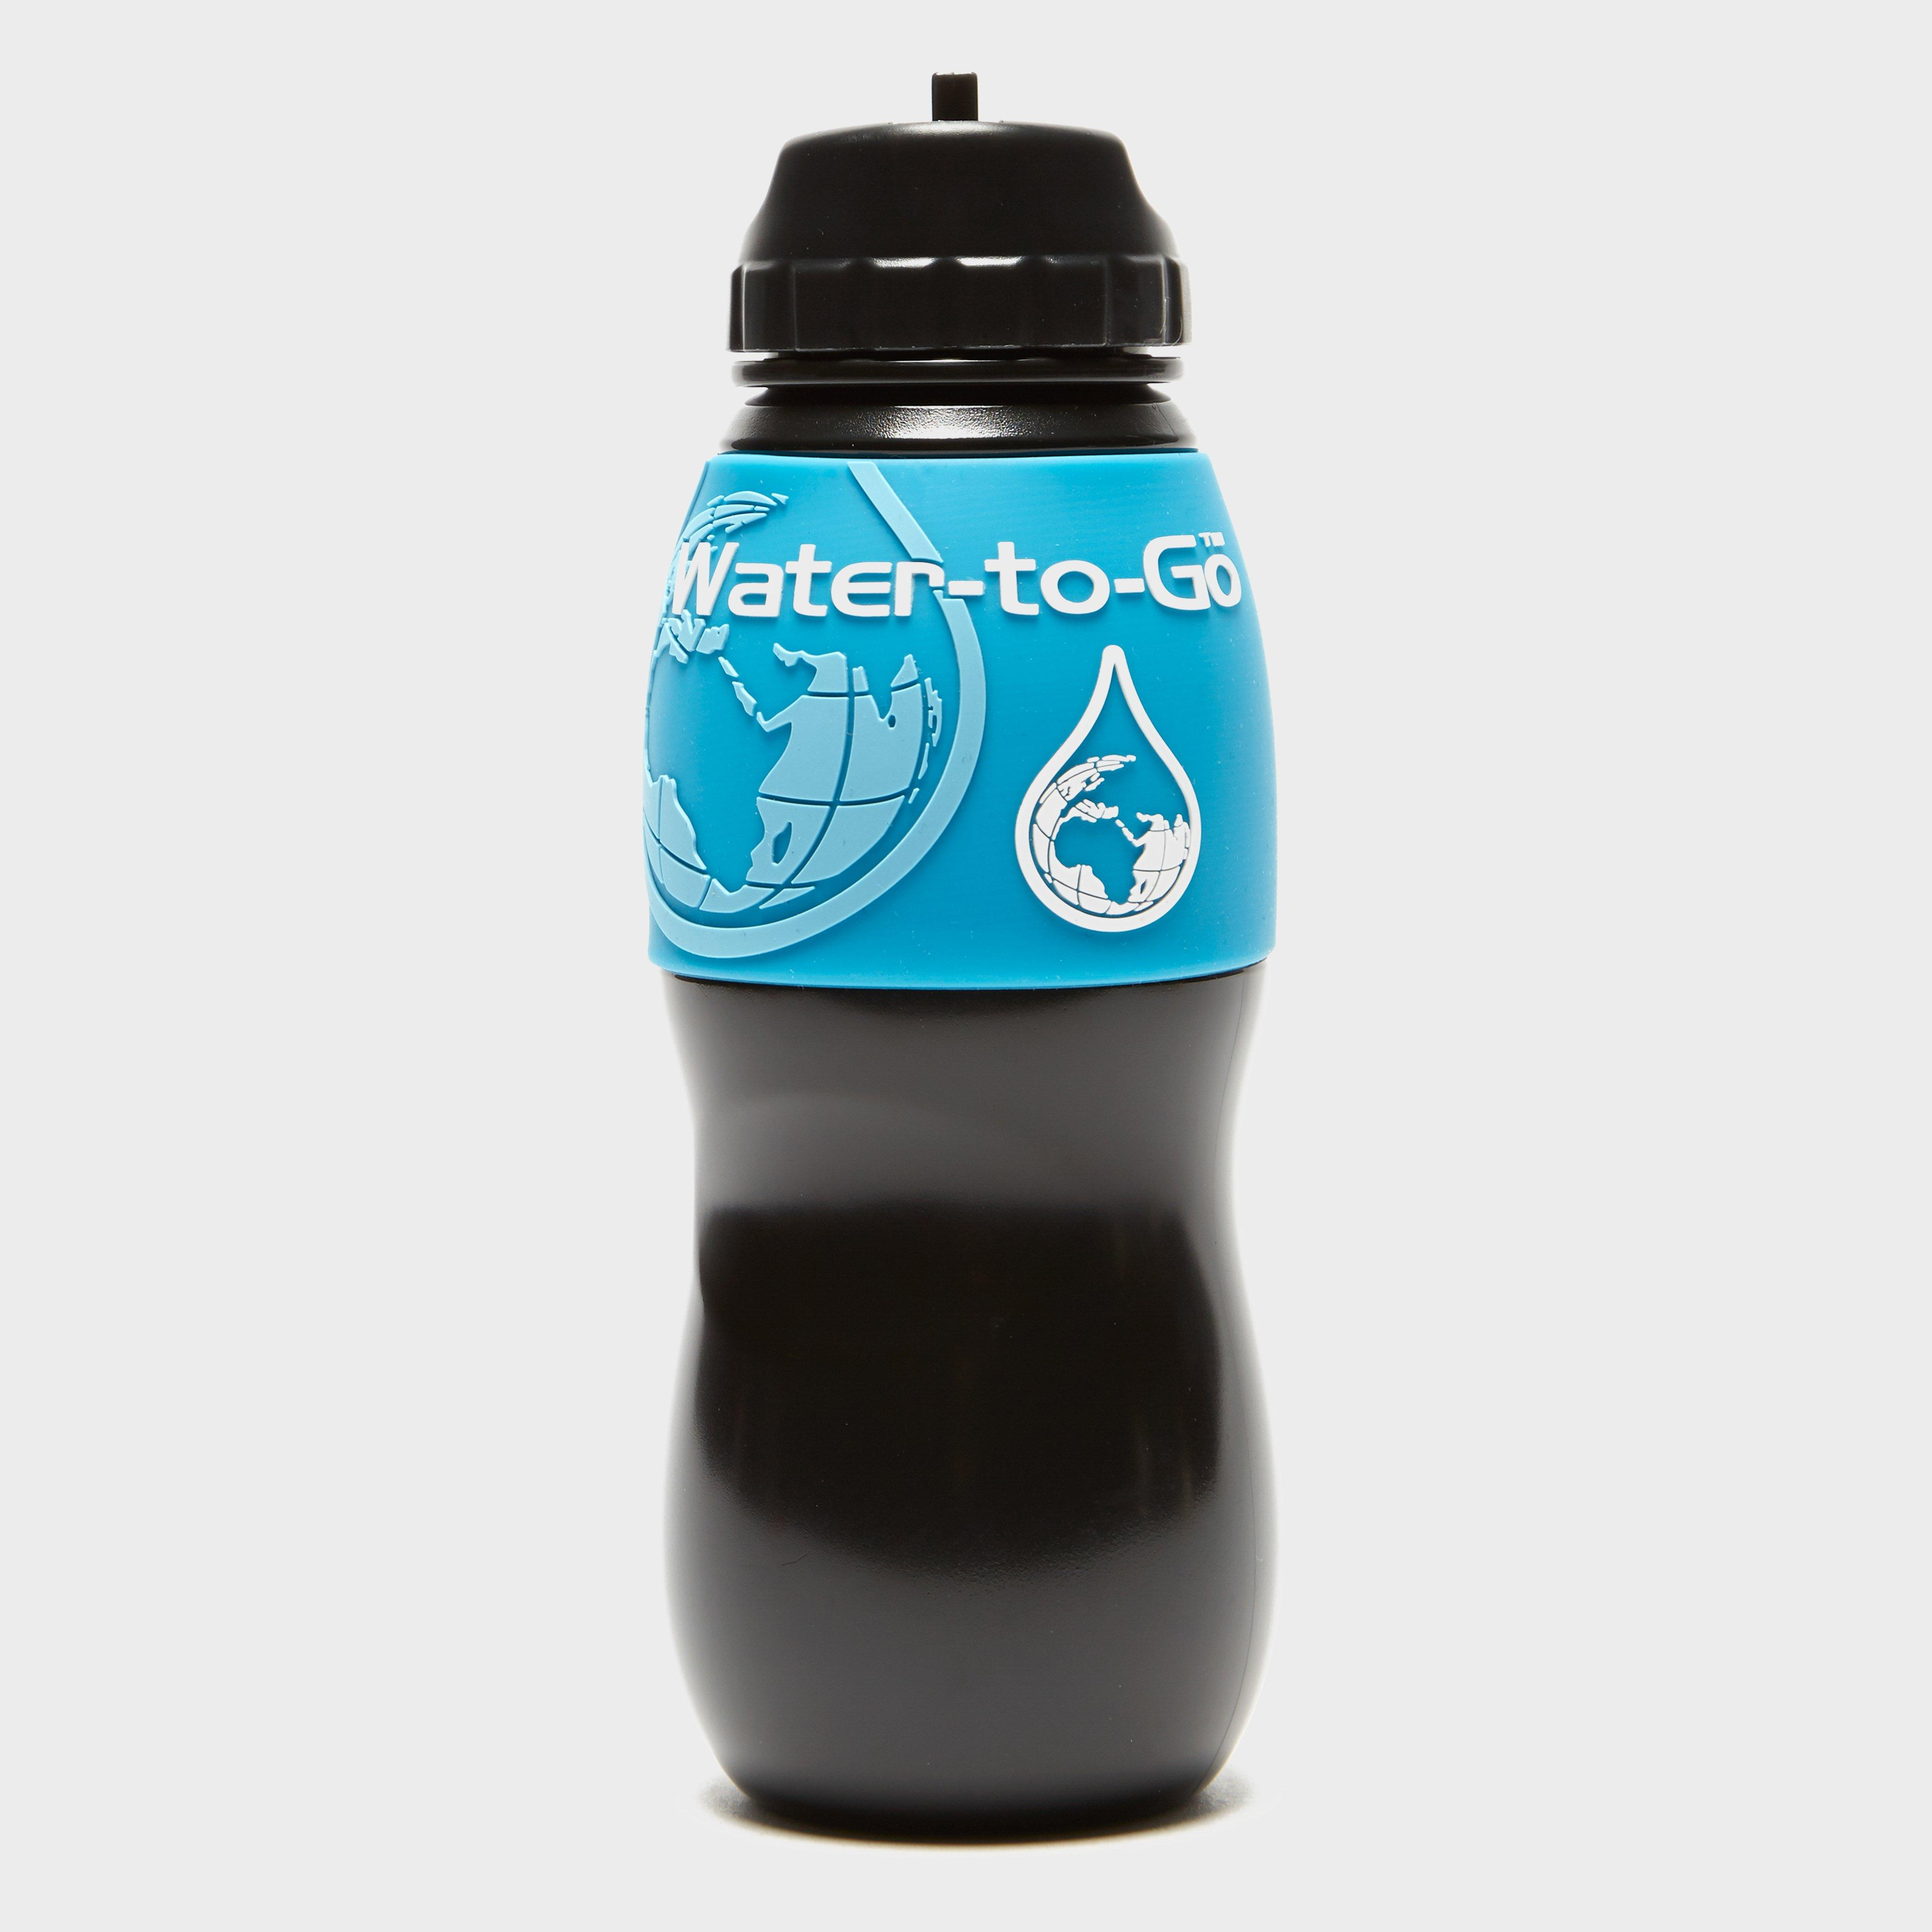 Water-To-Go Water-To-Go Filter Bottle 75cl - Black, Black